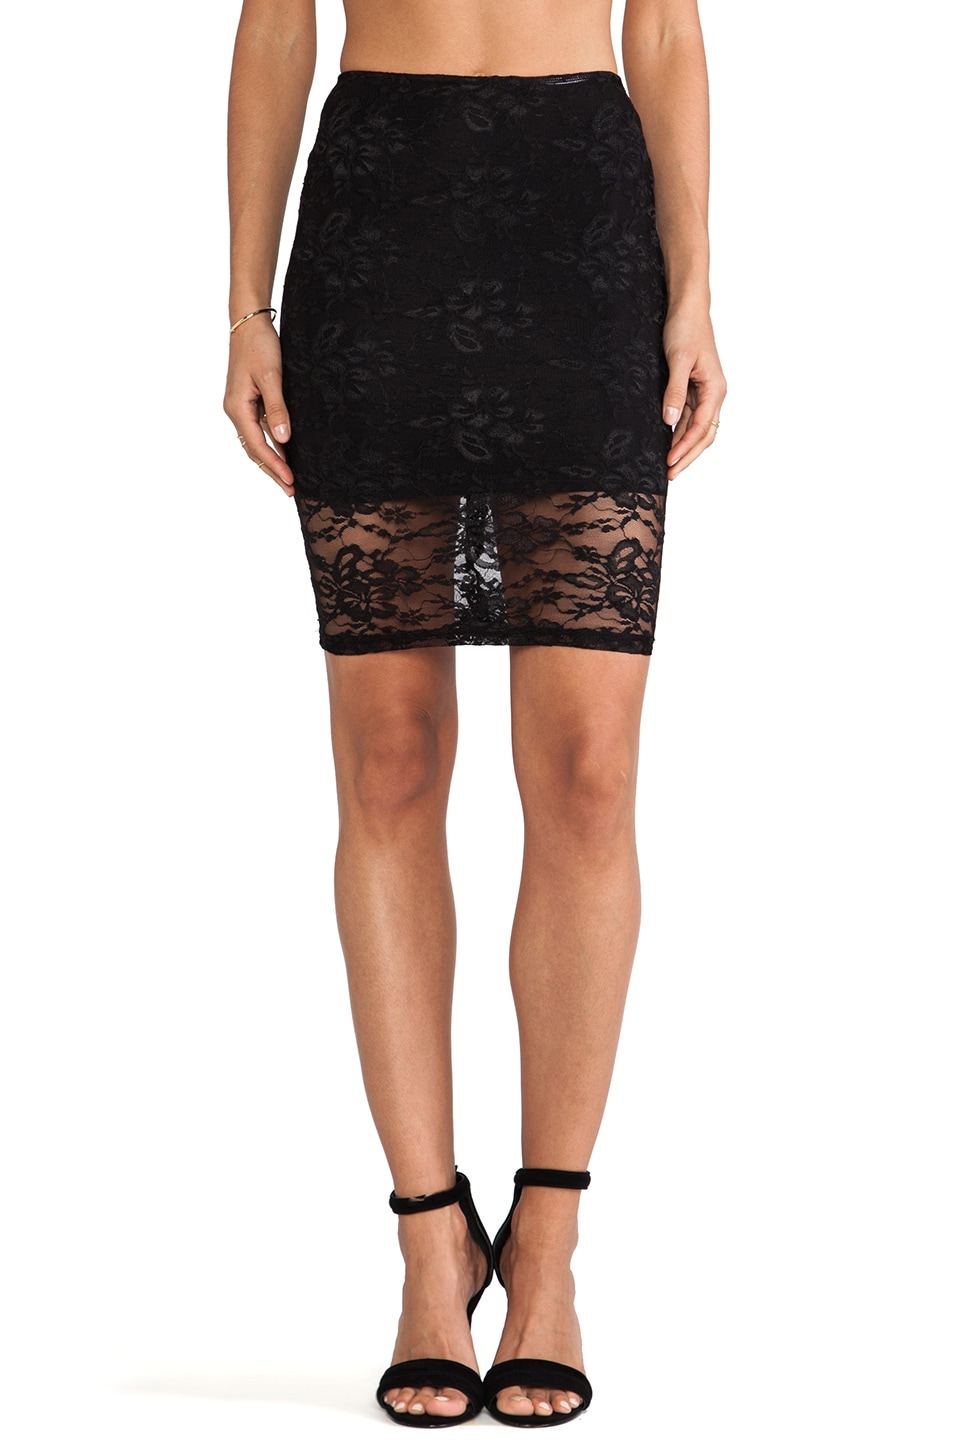 Nookie Teen Spirit Pencil Skirt in Black